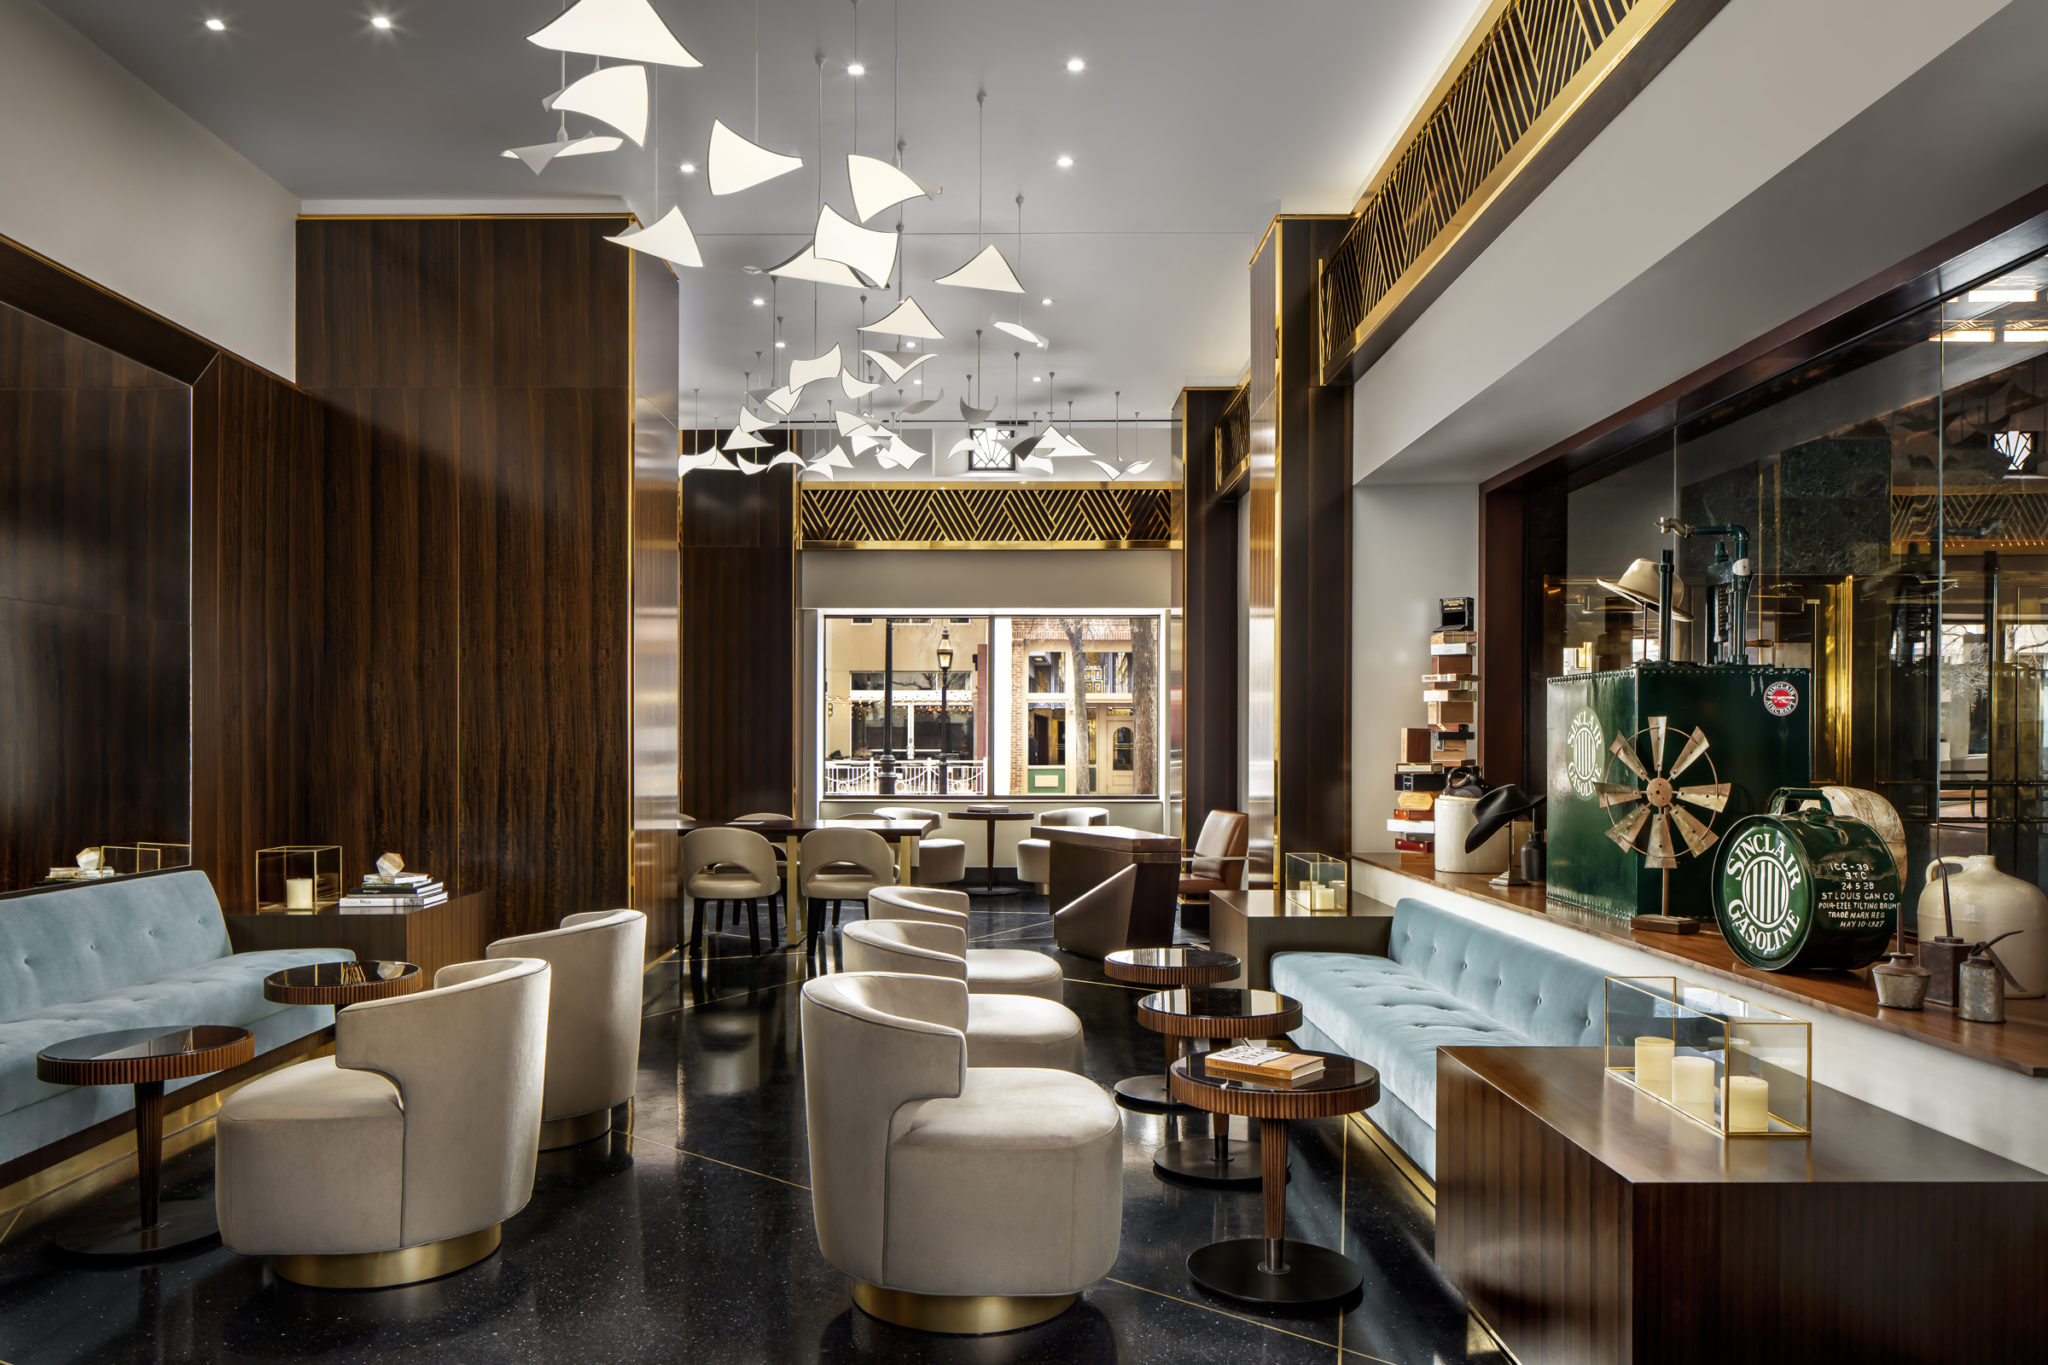 Take a Look at Dallas Best Interior Designers - Part II take a look at dallas best interior designers Take a Look at Dallas Best Interior Designers – Part II The Sinclair Best Hotel Luxury Lobby 2048x1365 1